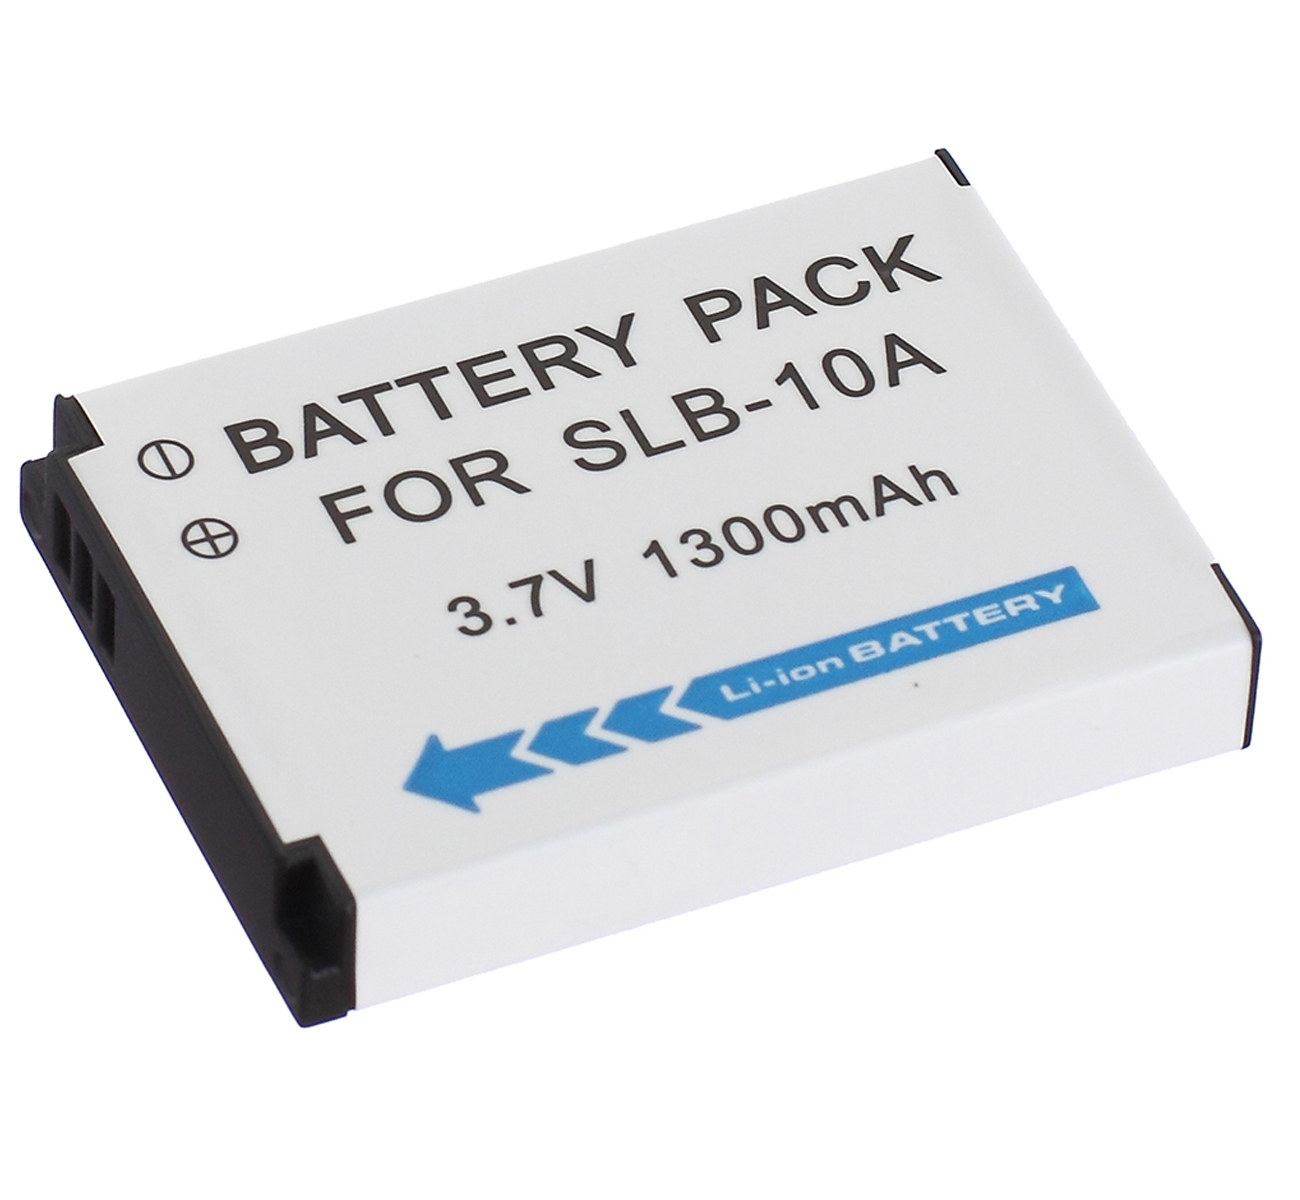 Battery Pack for <font><b>Samsung</b></font> WB700, WB750, WB800F, WB850F, WB855F, <font><b>WB1100F</b></font>, WB1101F, WB1102F, WB2100 Digital Camera image